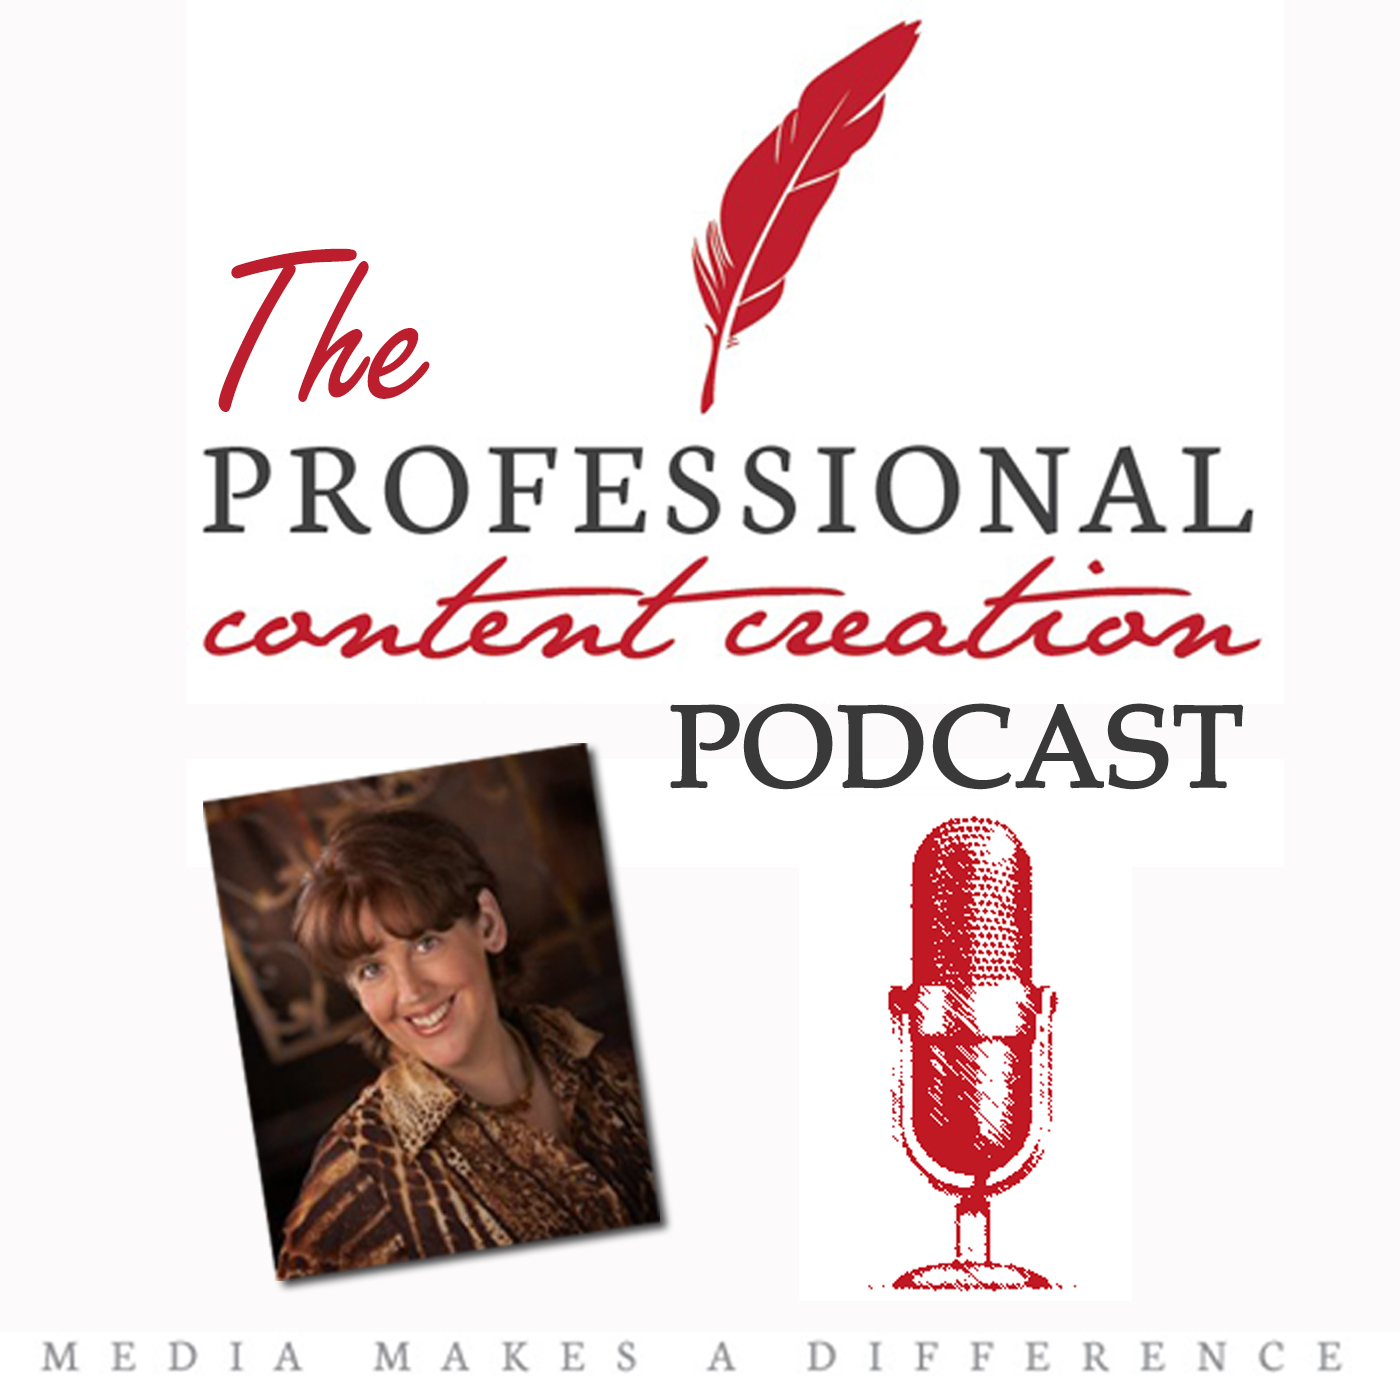 The Professional Content Creation Podcast: Content Creation | Blogging | Content Marketing